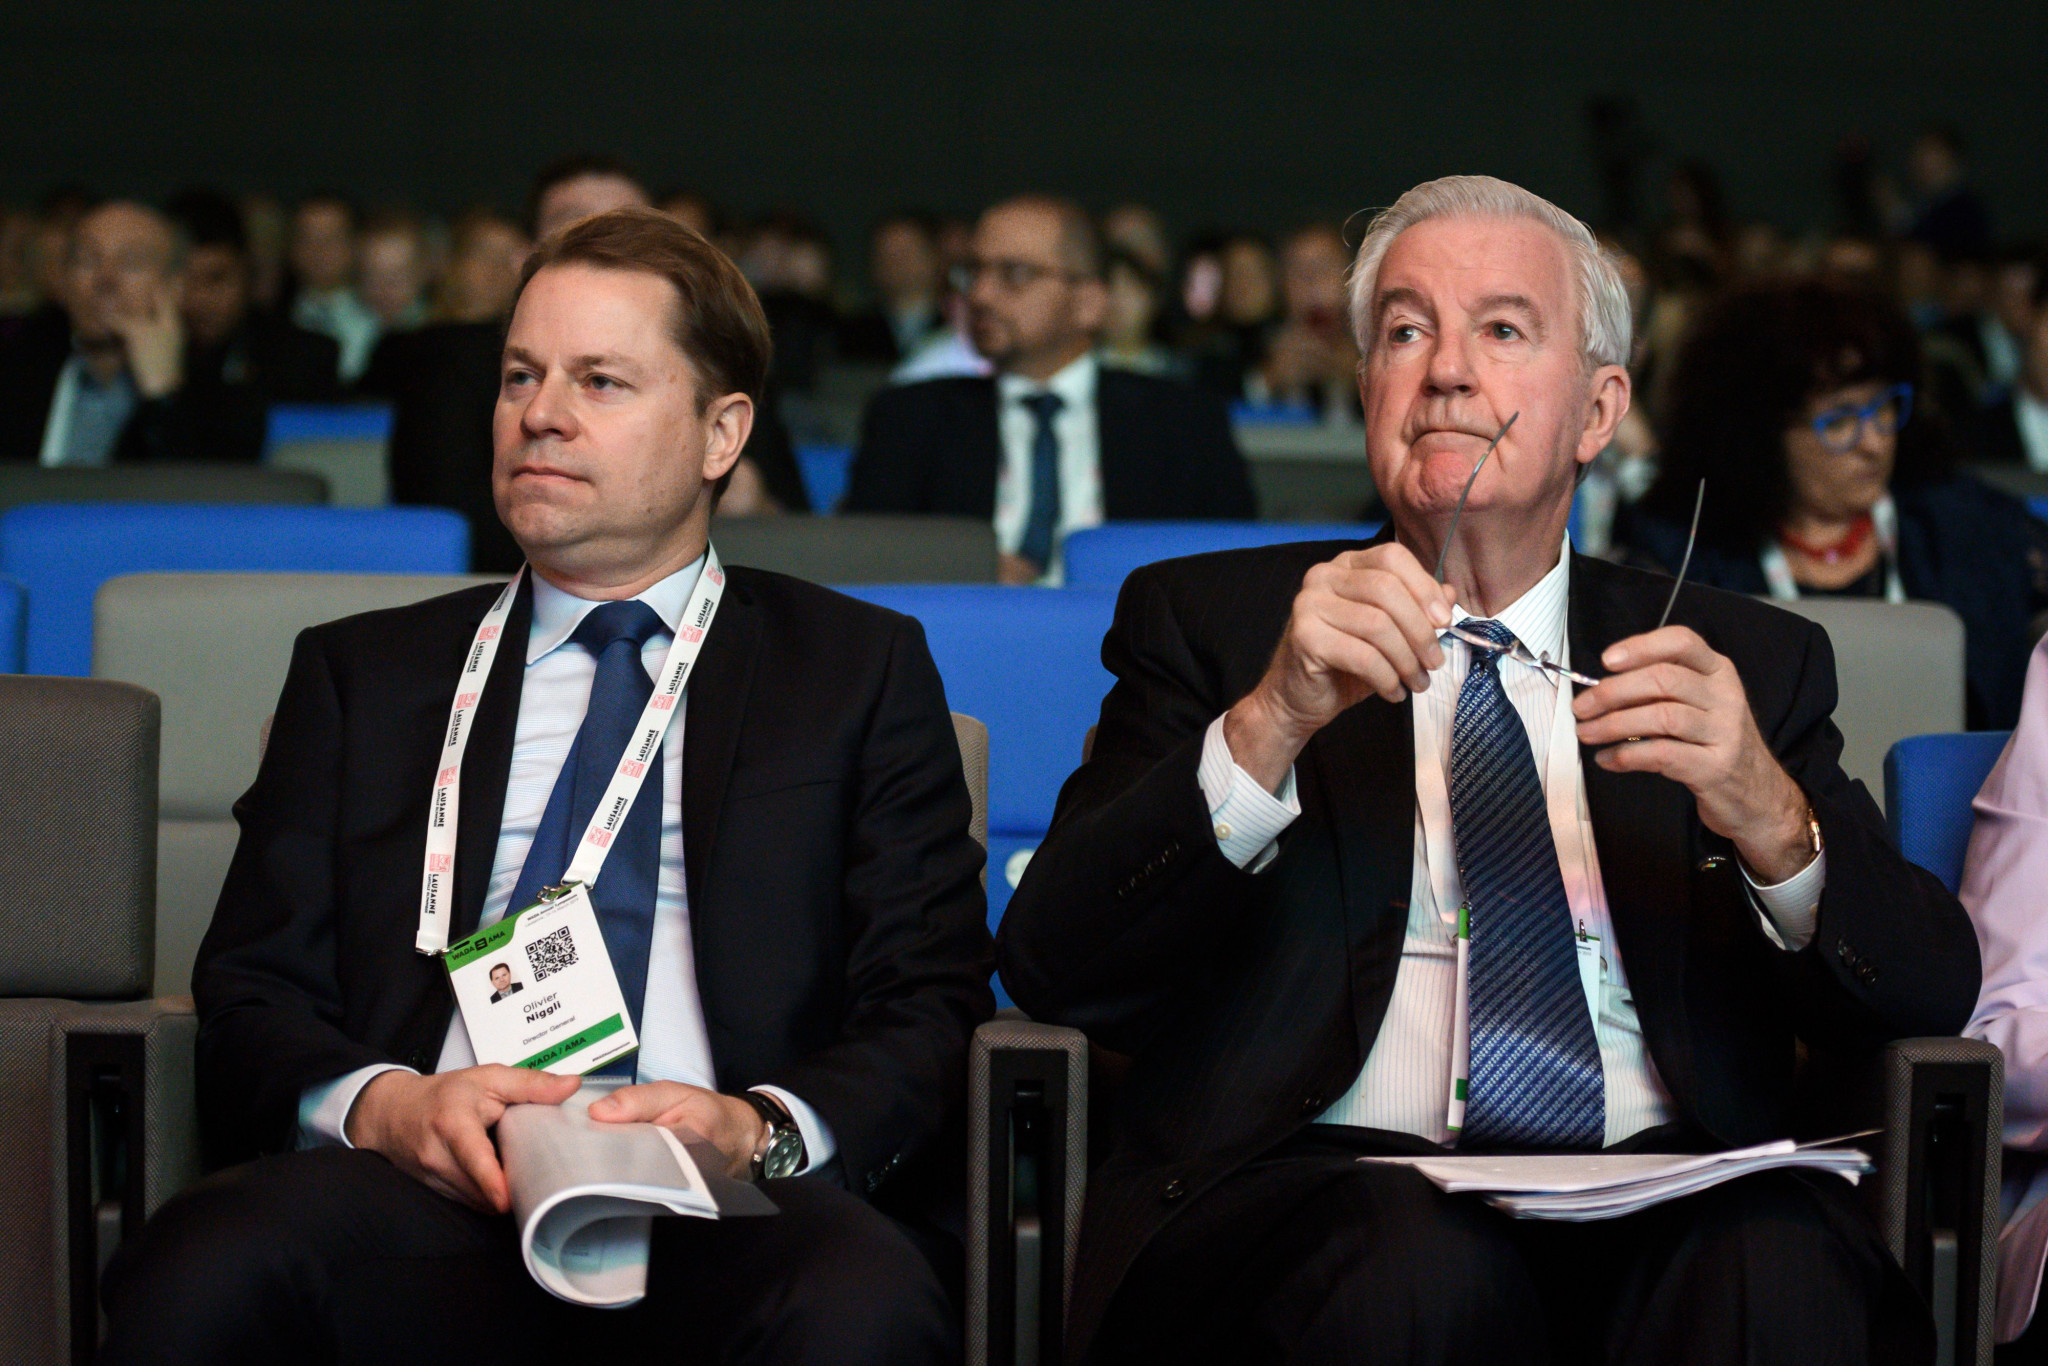 WADA President Sir Craig Reedie, right, and director general Olivier Niggli say 2018 will be remembered as a breakthrough year in the Russian scandal ©Getty Images